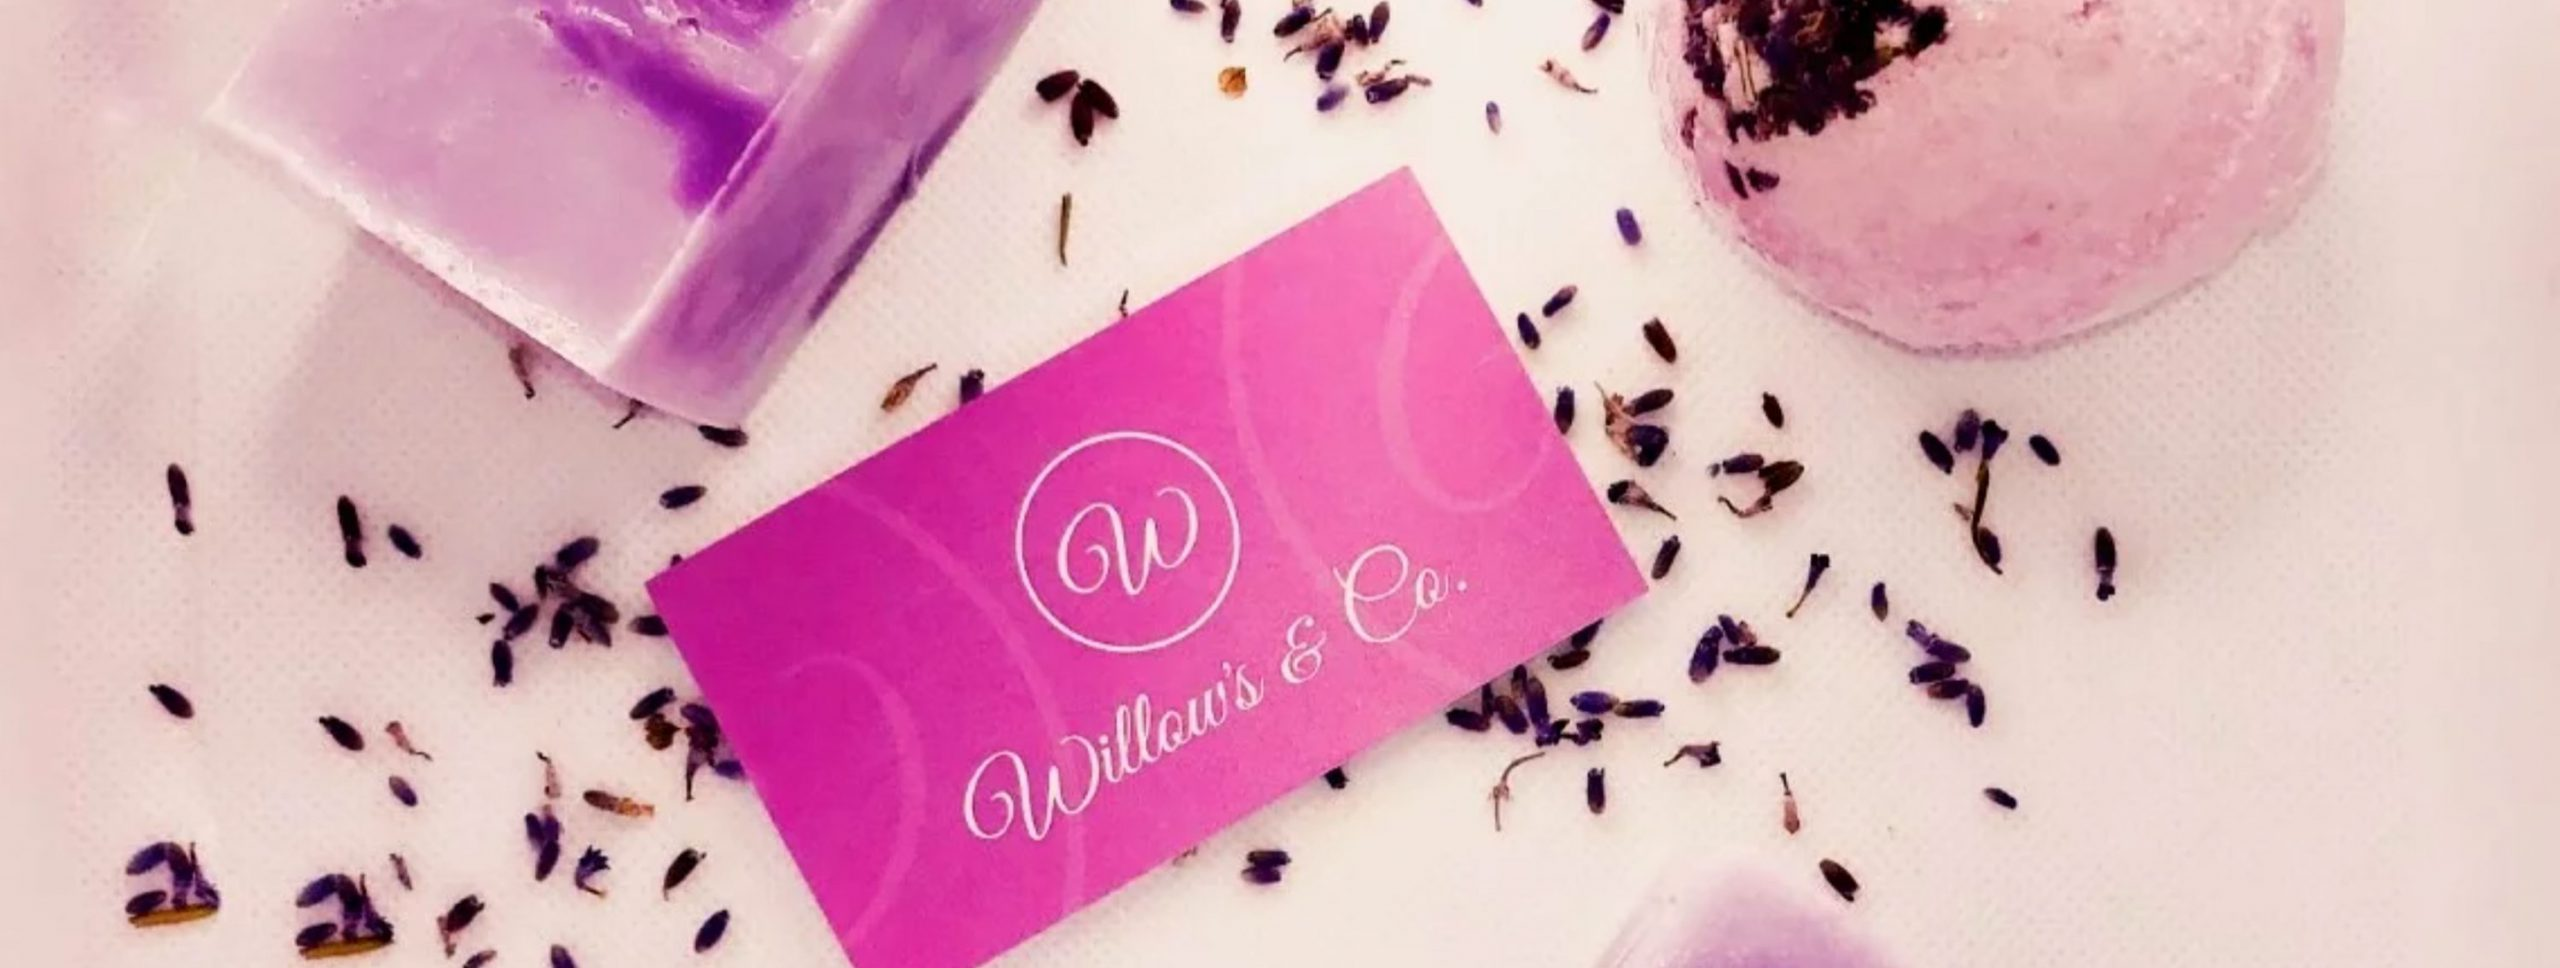 Willow's and Co. organic body products